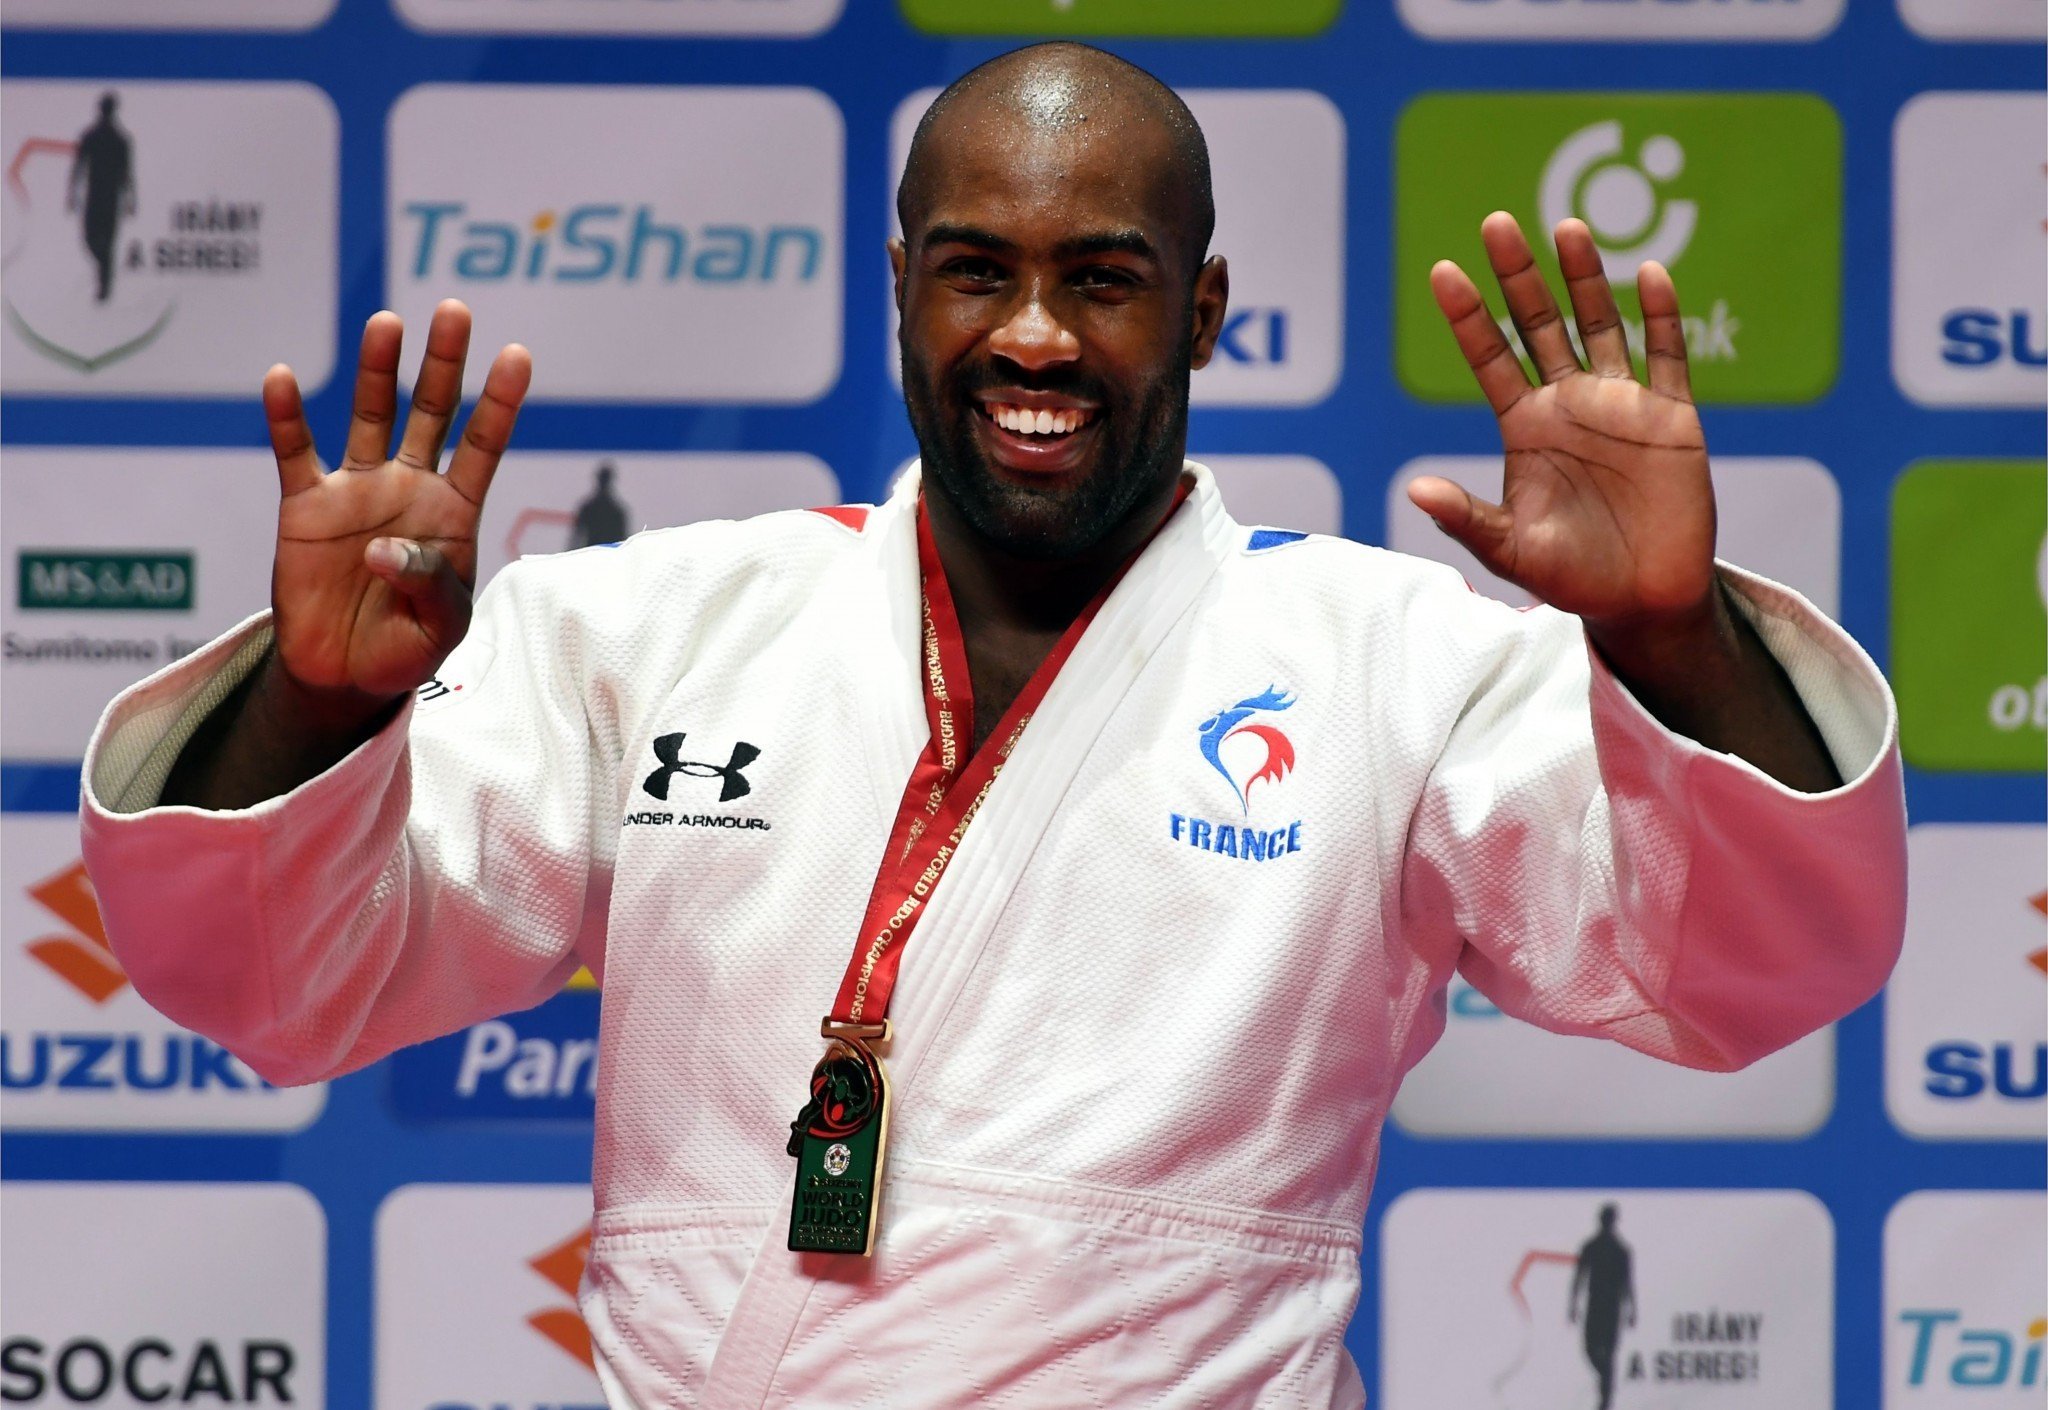 Teddy Riner will feature in today's episode as he secured his ninth World Championships gold medal ©Getty Images